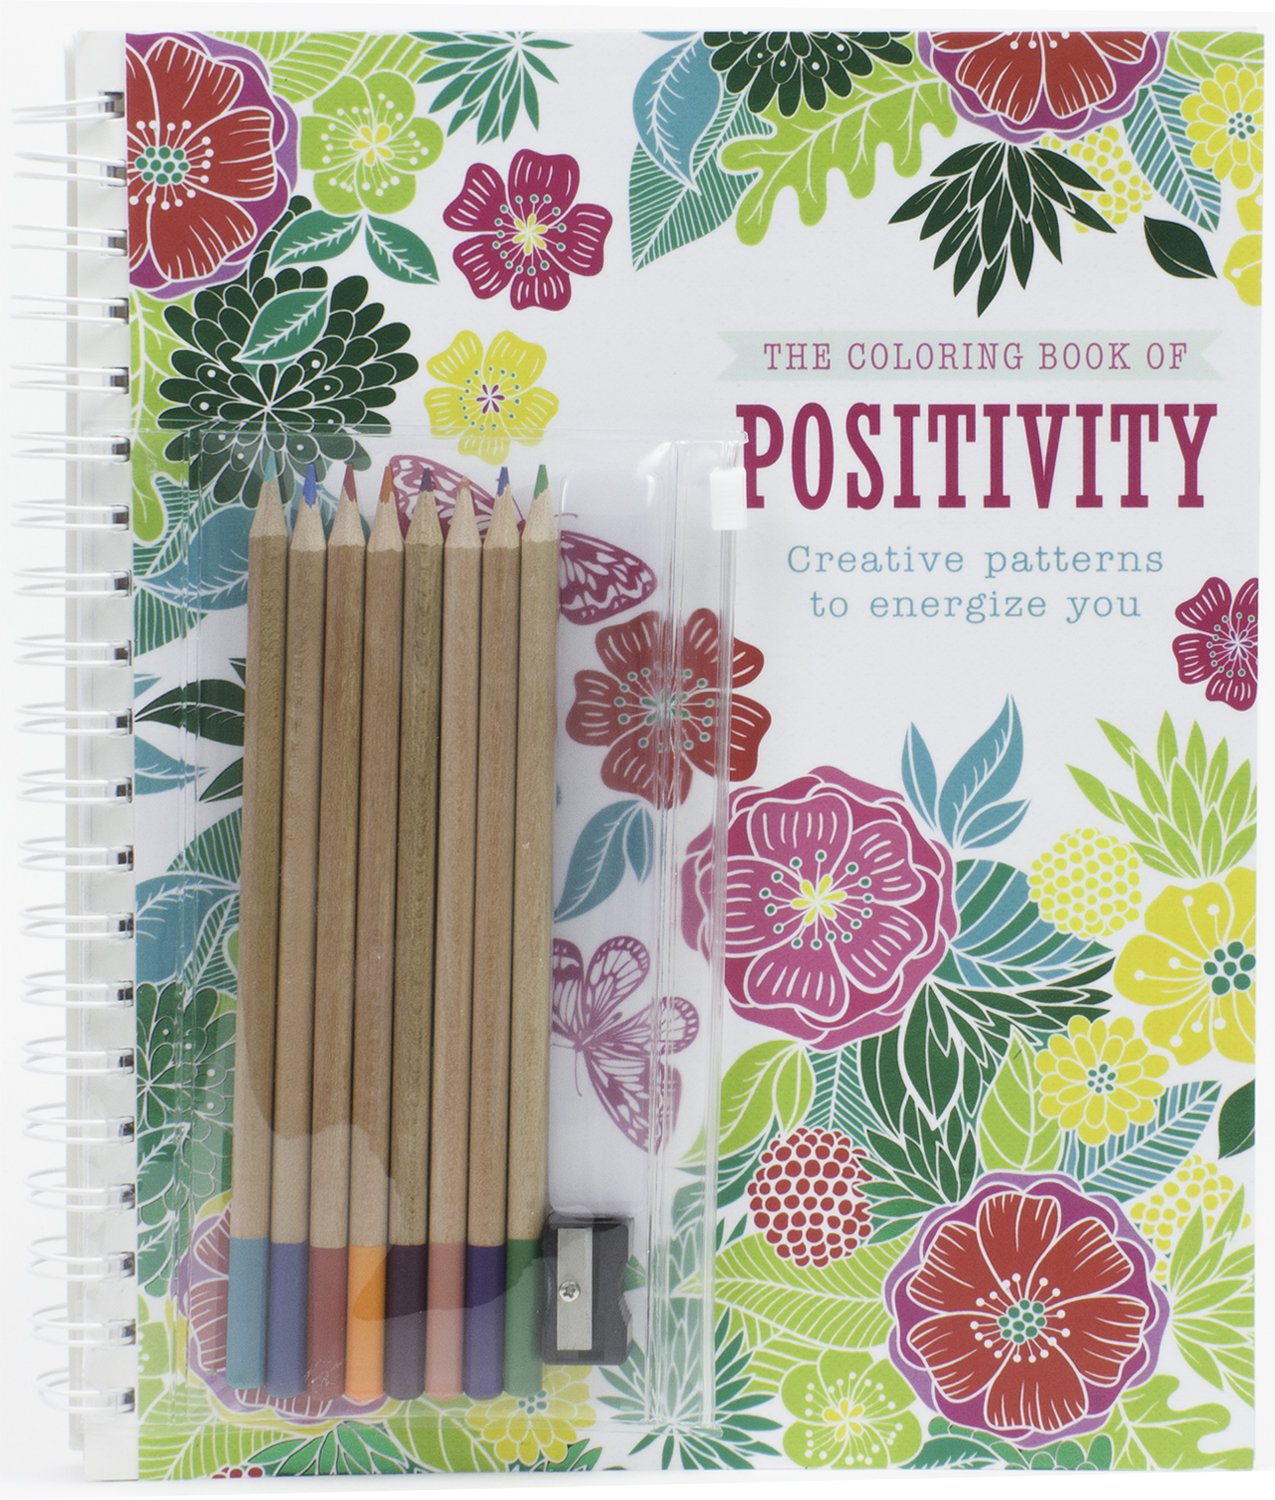 The coloring book of positivity - Amazon Com The Coloring Book Of Positivity Creative Patterns To Energize You 9781474857482 Parragon Books Ltd Books